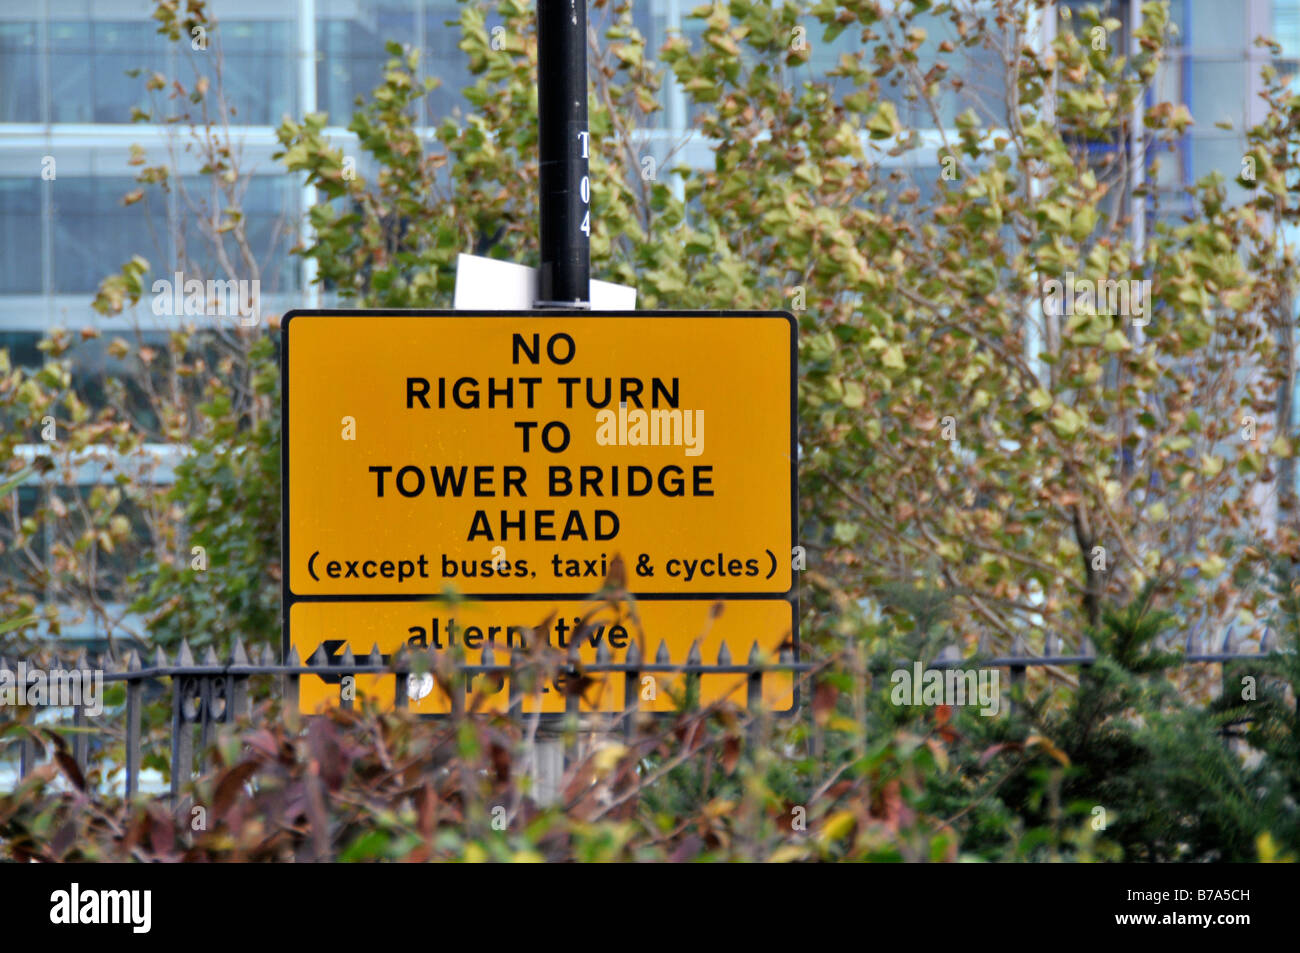 No right turn sign to  tower bridge - Stock Image